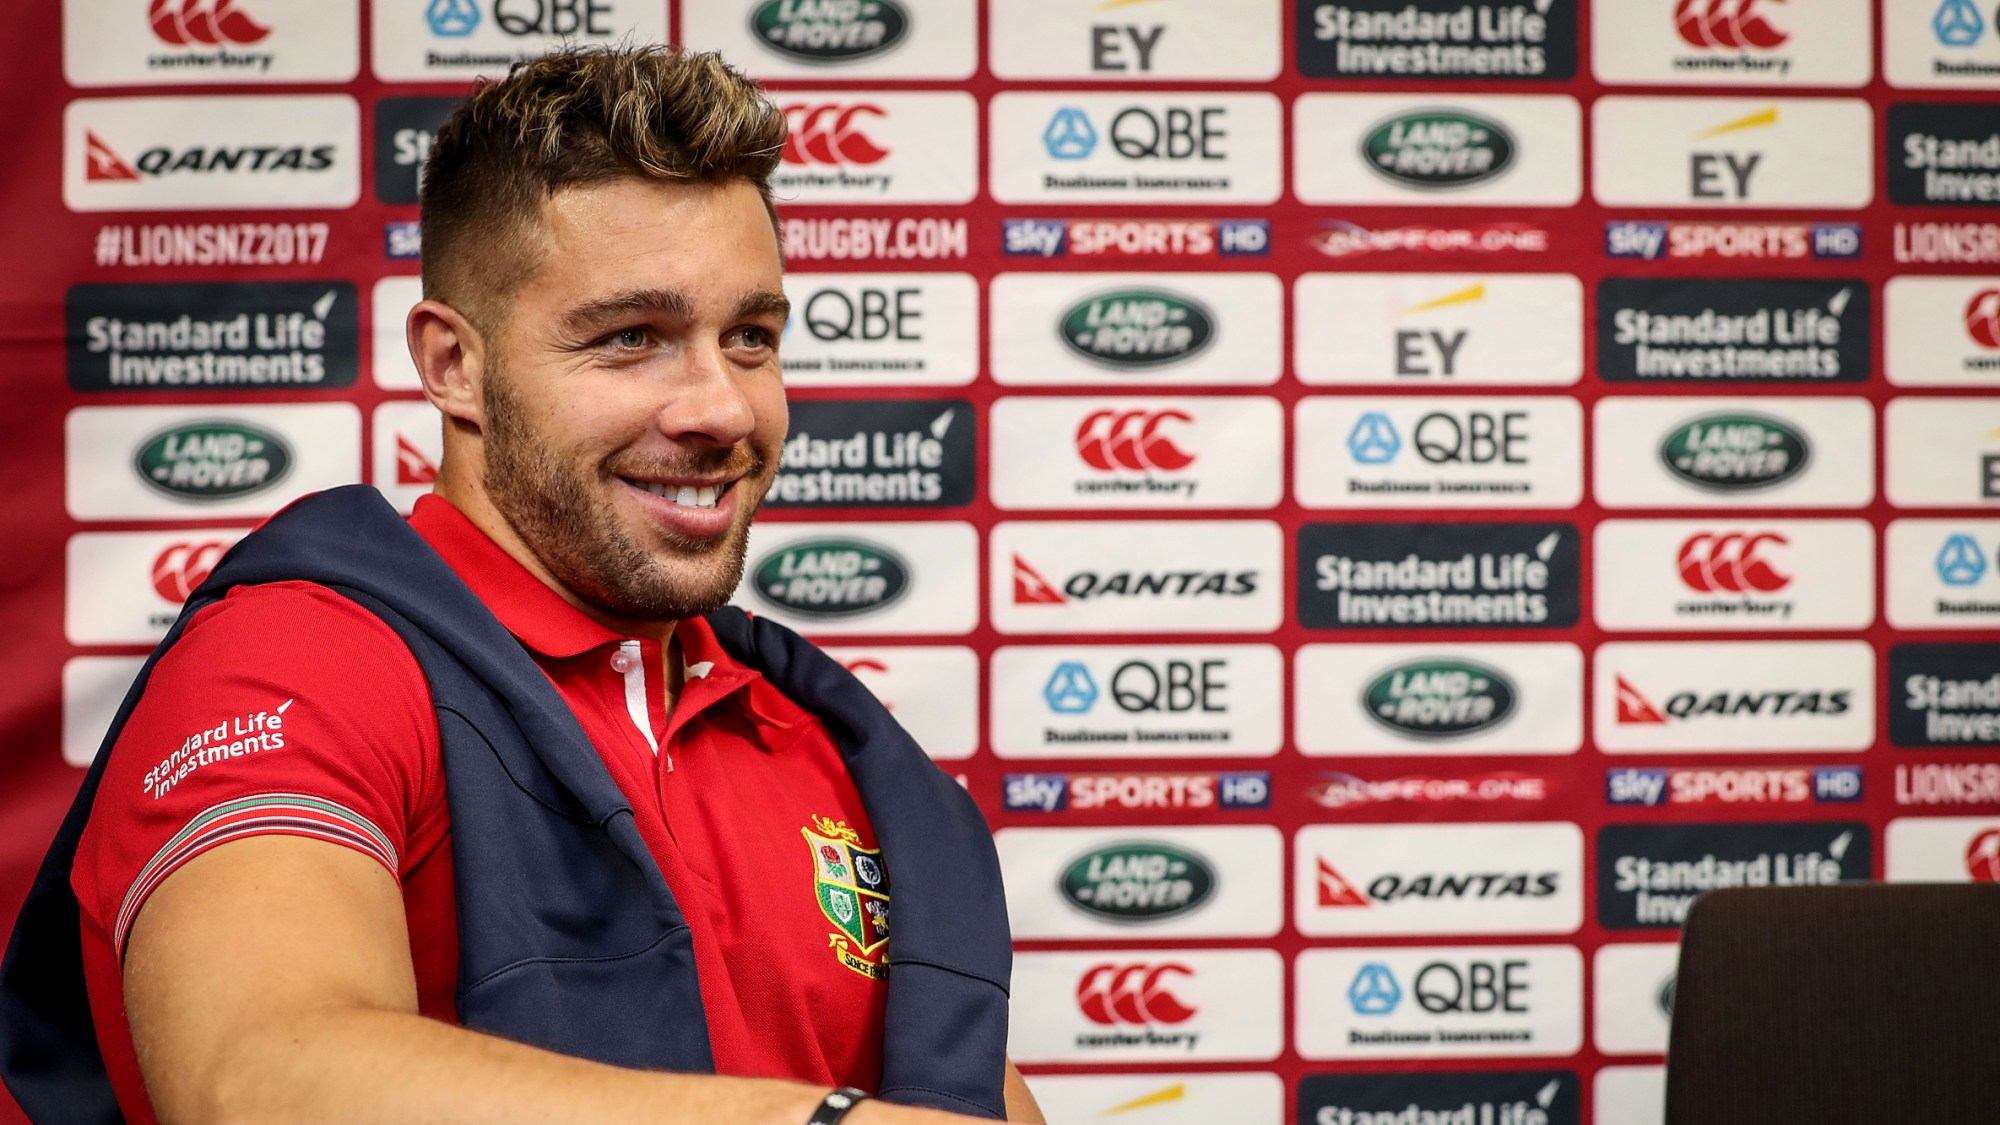 Rhys Webb lifts the lid on life on Tour